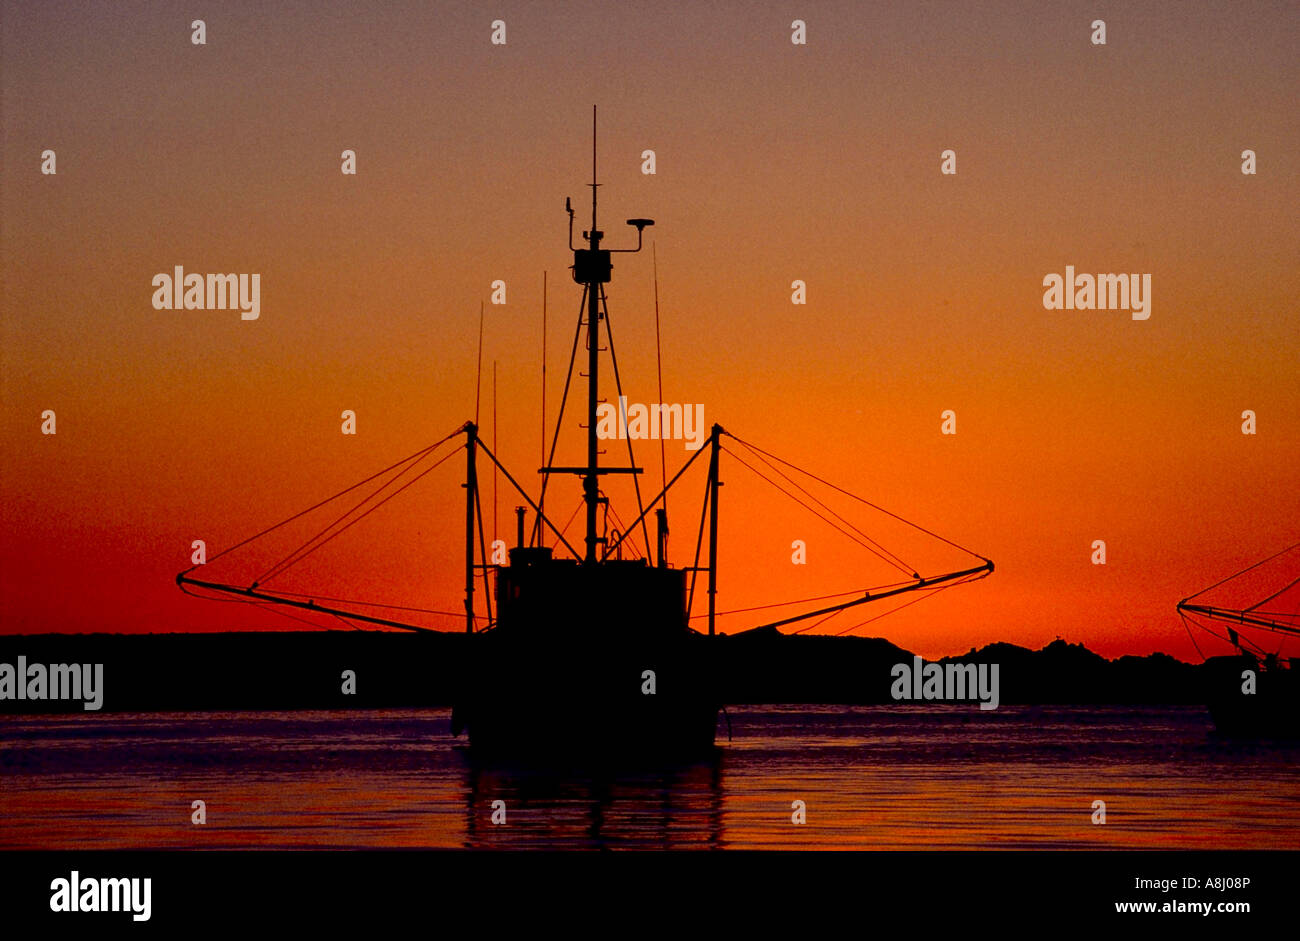 Fishing trawlers at sunset, silhouetted in dusk light Stock Photo